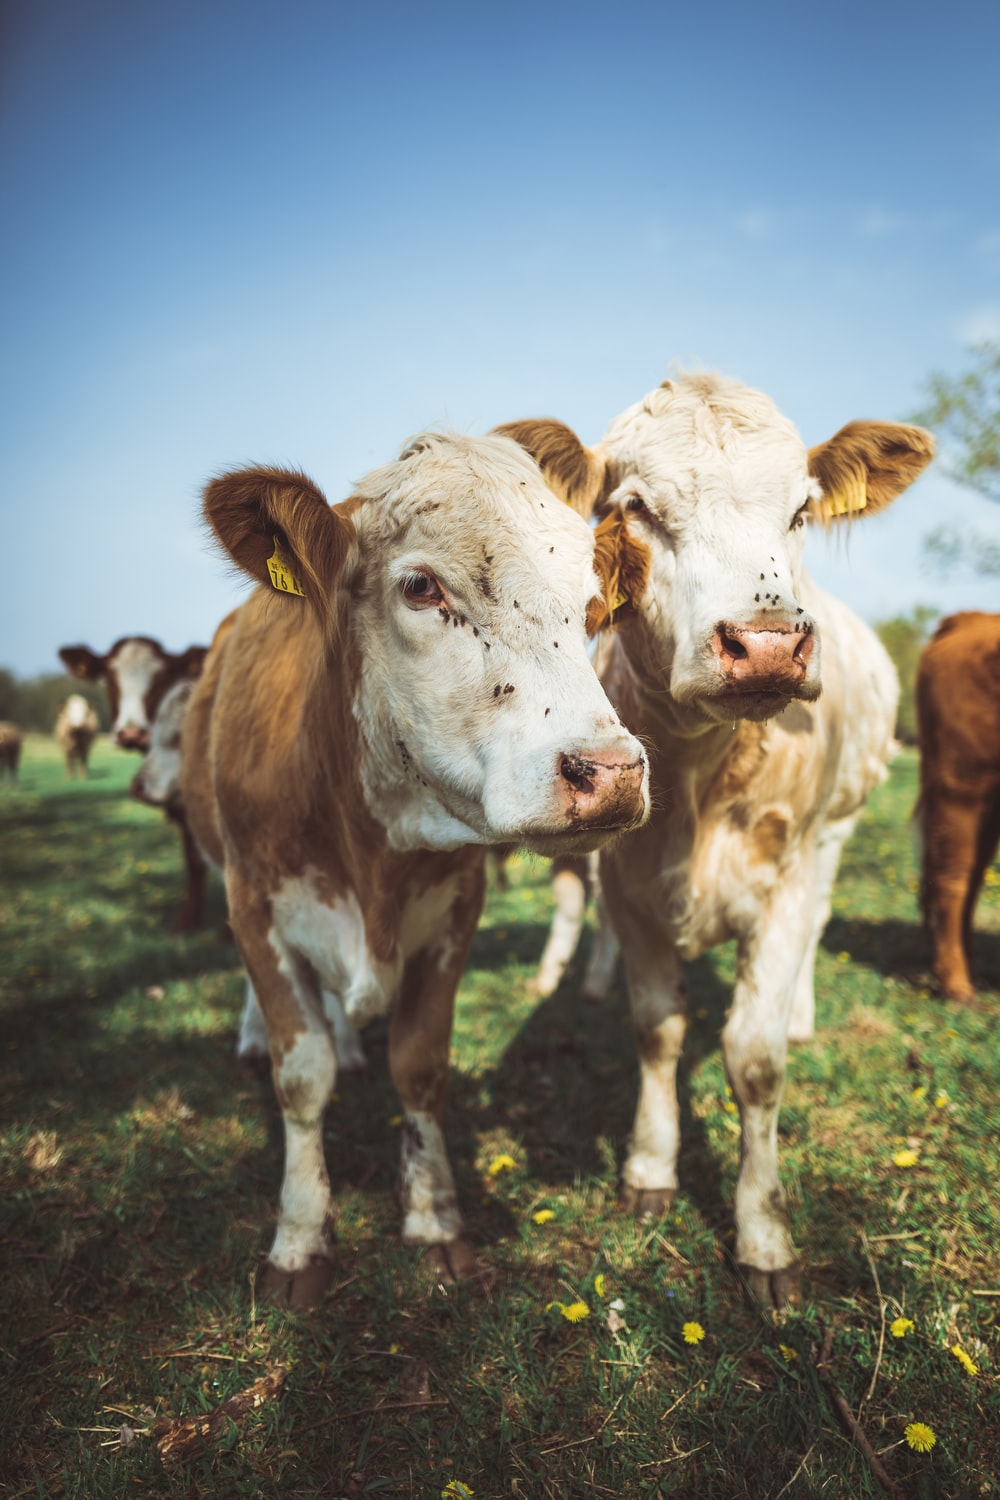 close-up photo of brown and white cattle